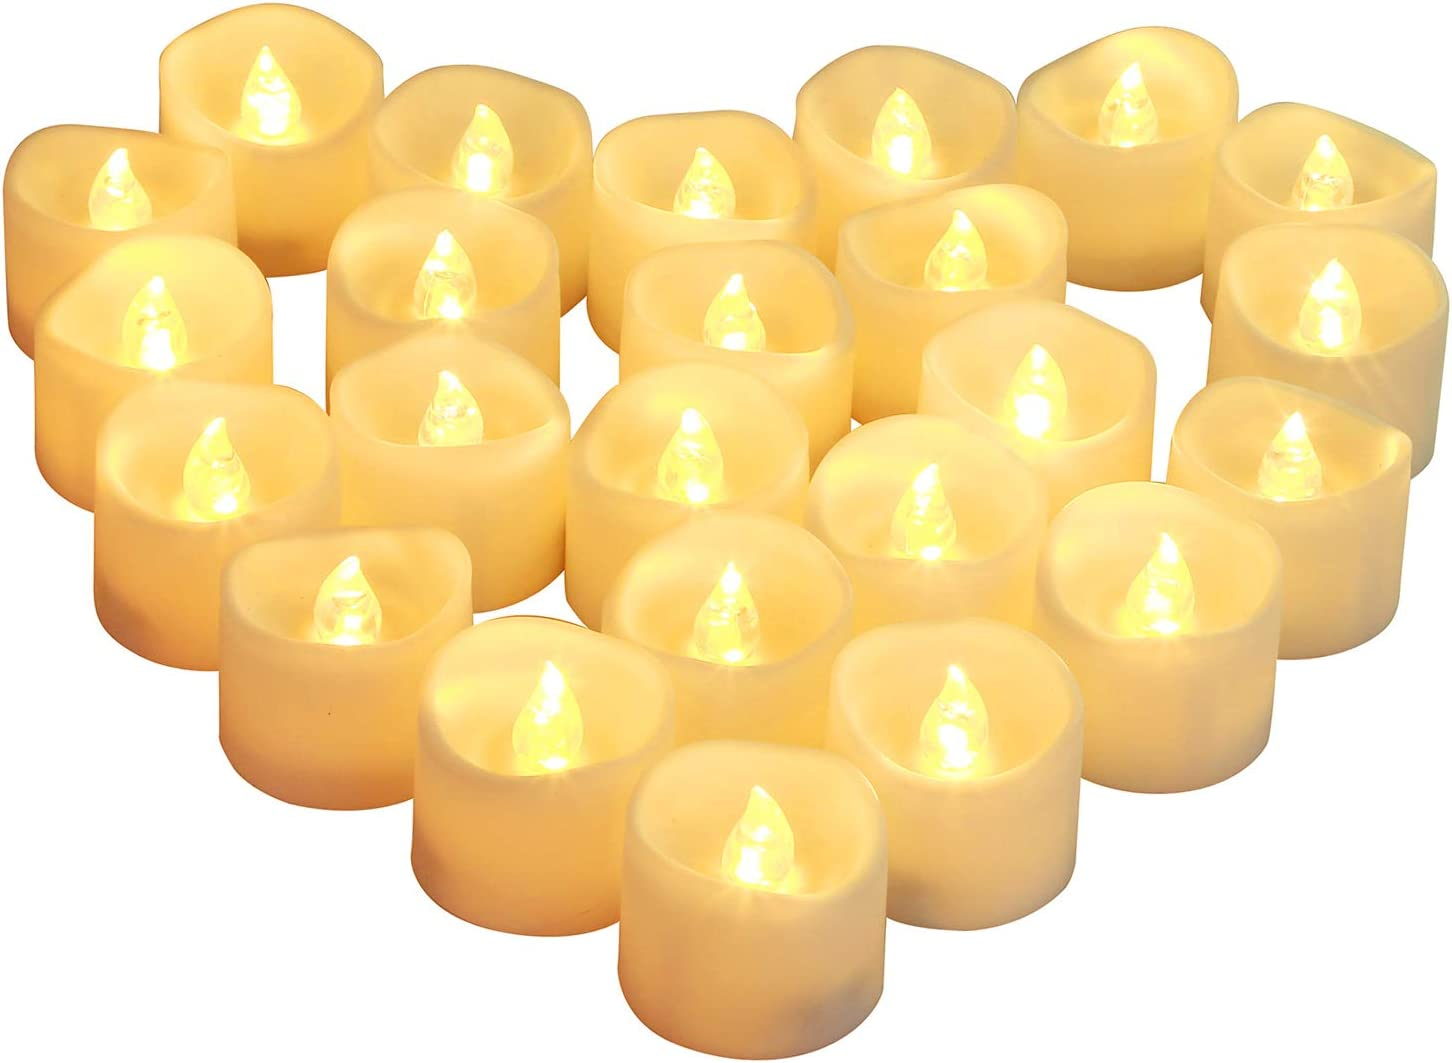 Homemory 24-Count Timed Tealight Candles, Battery Operated Tea Candles, Flameless Flickering Electric Candles with Timer for Home Decor, Brightness Upgrade, Batteries Included